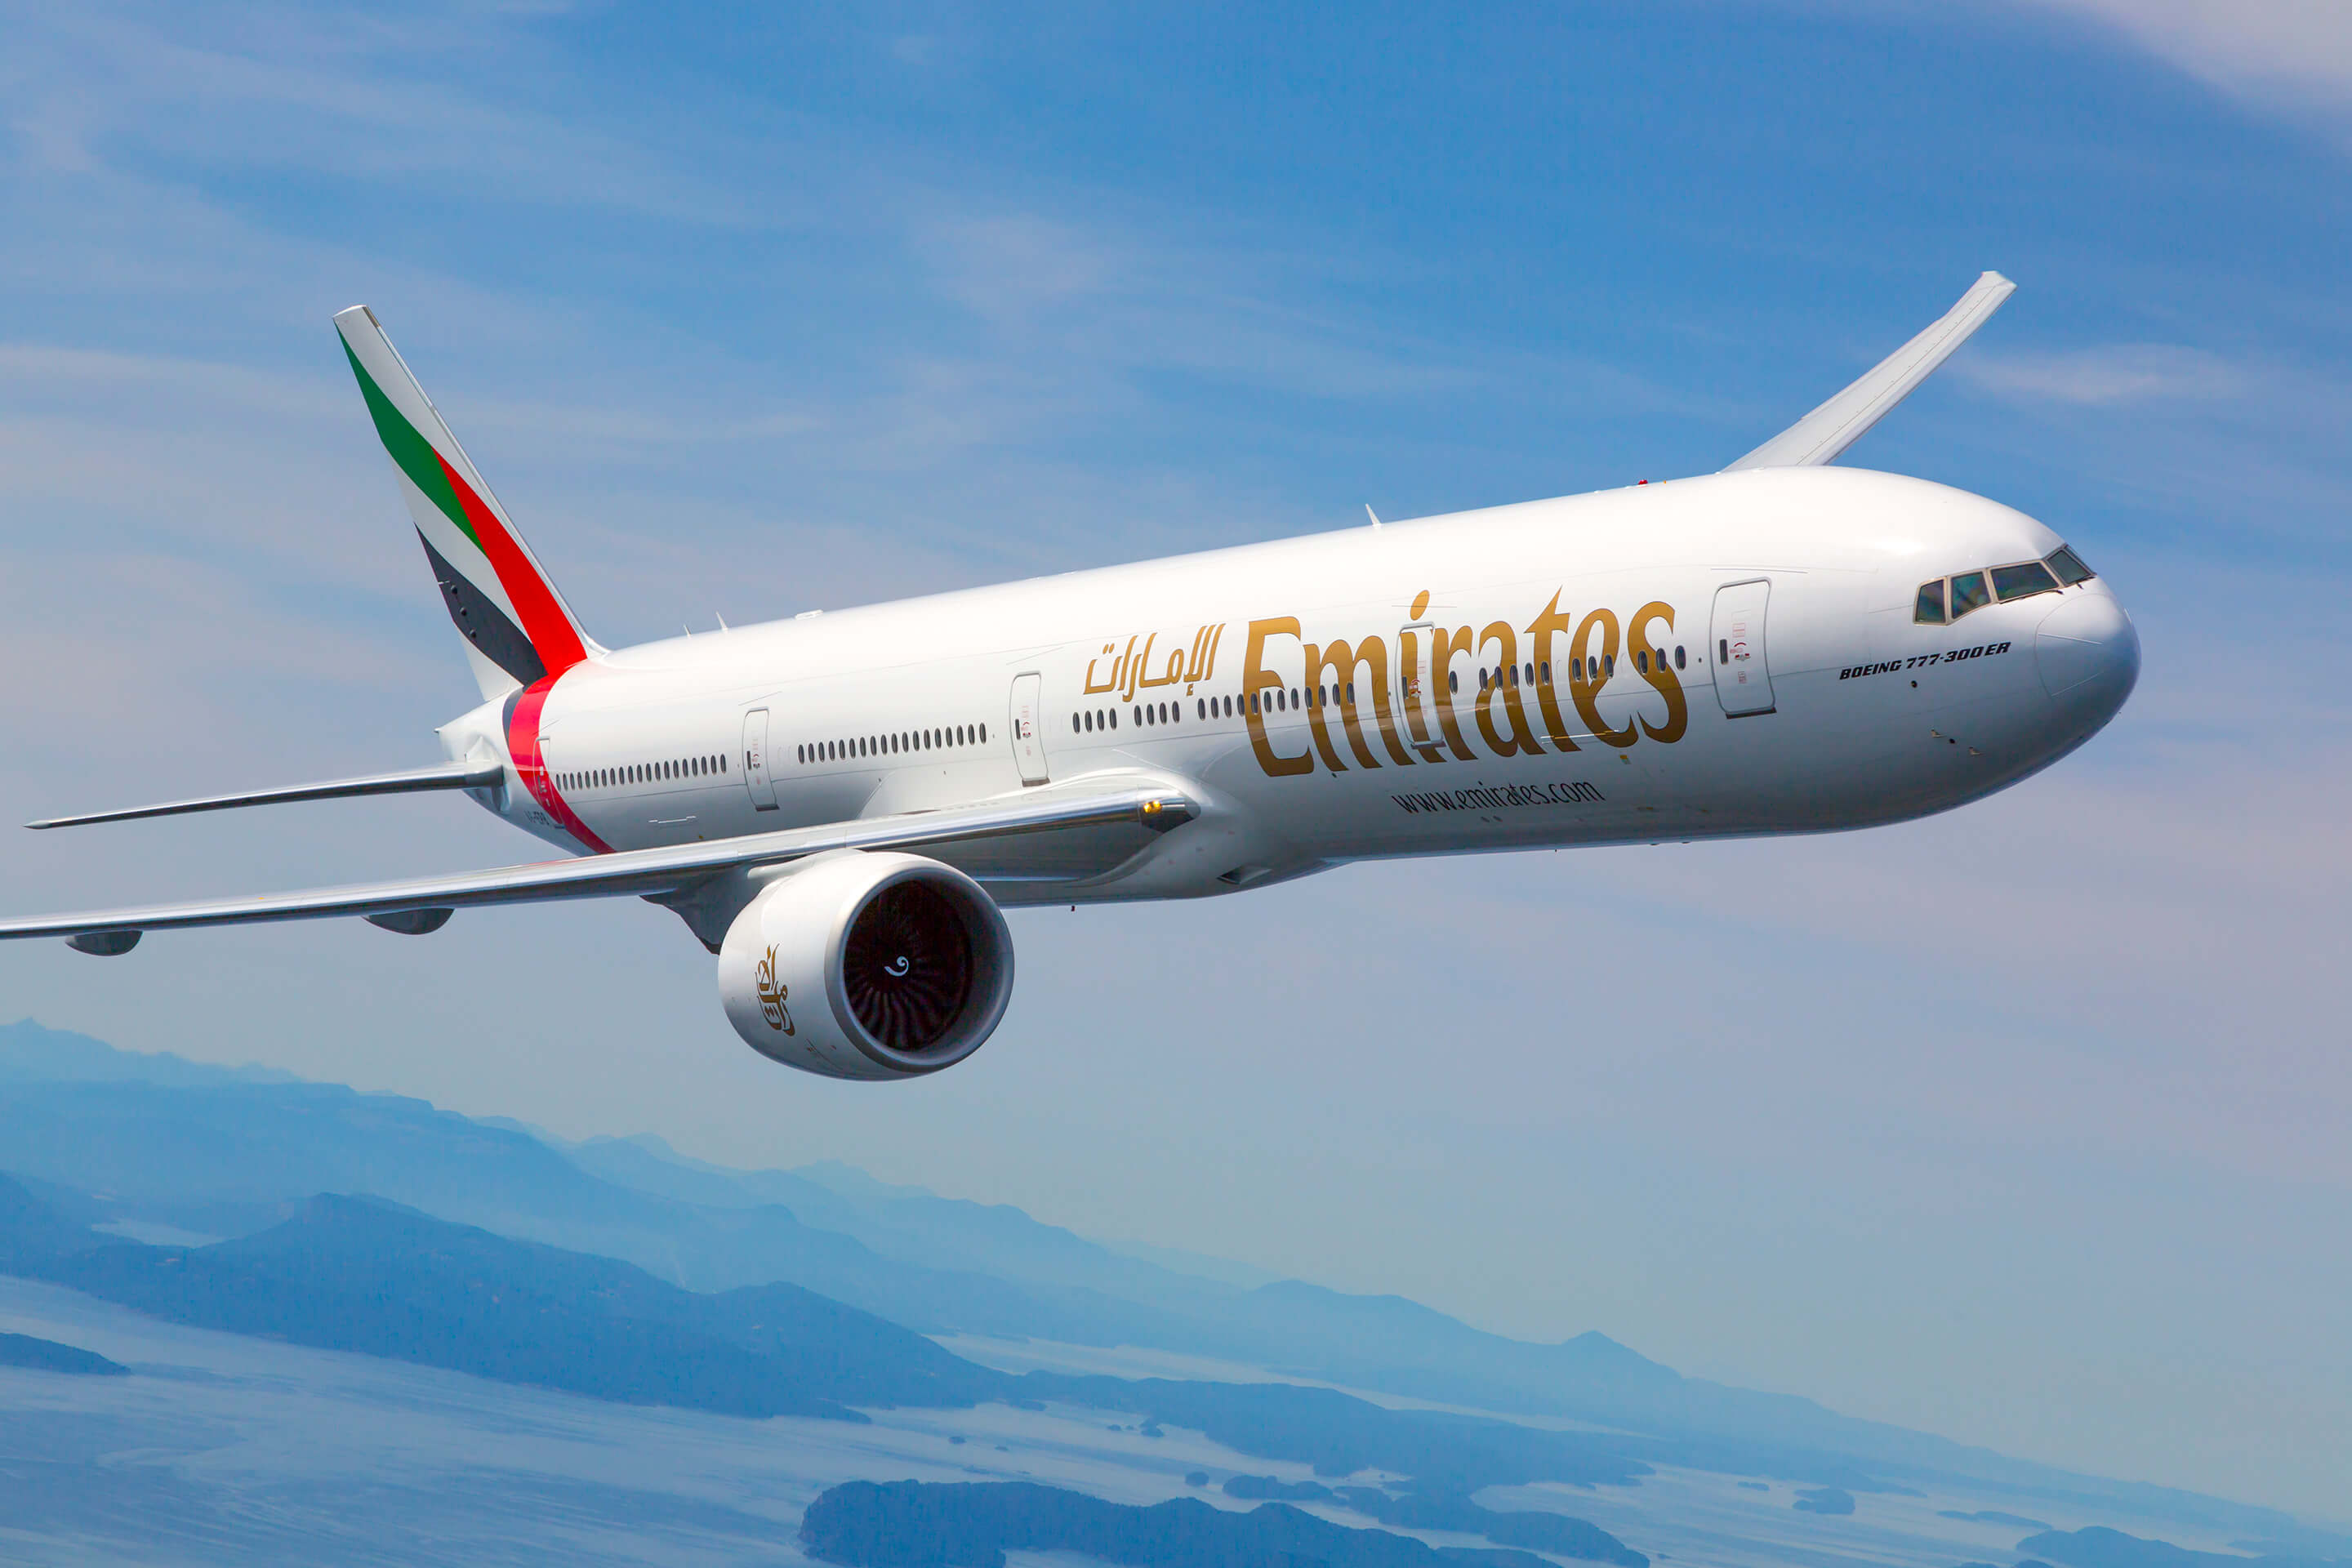 Emirates to resume service between Milan and New York